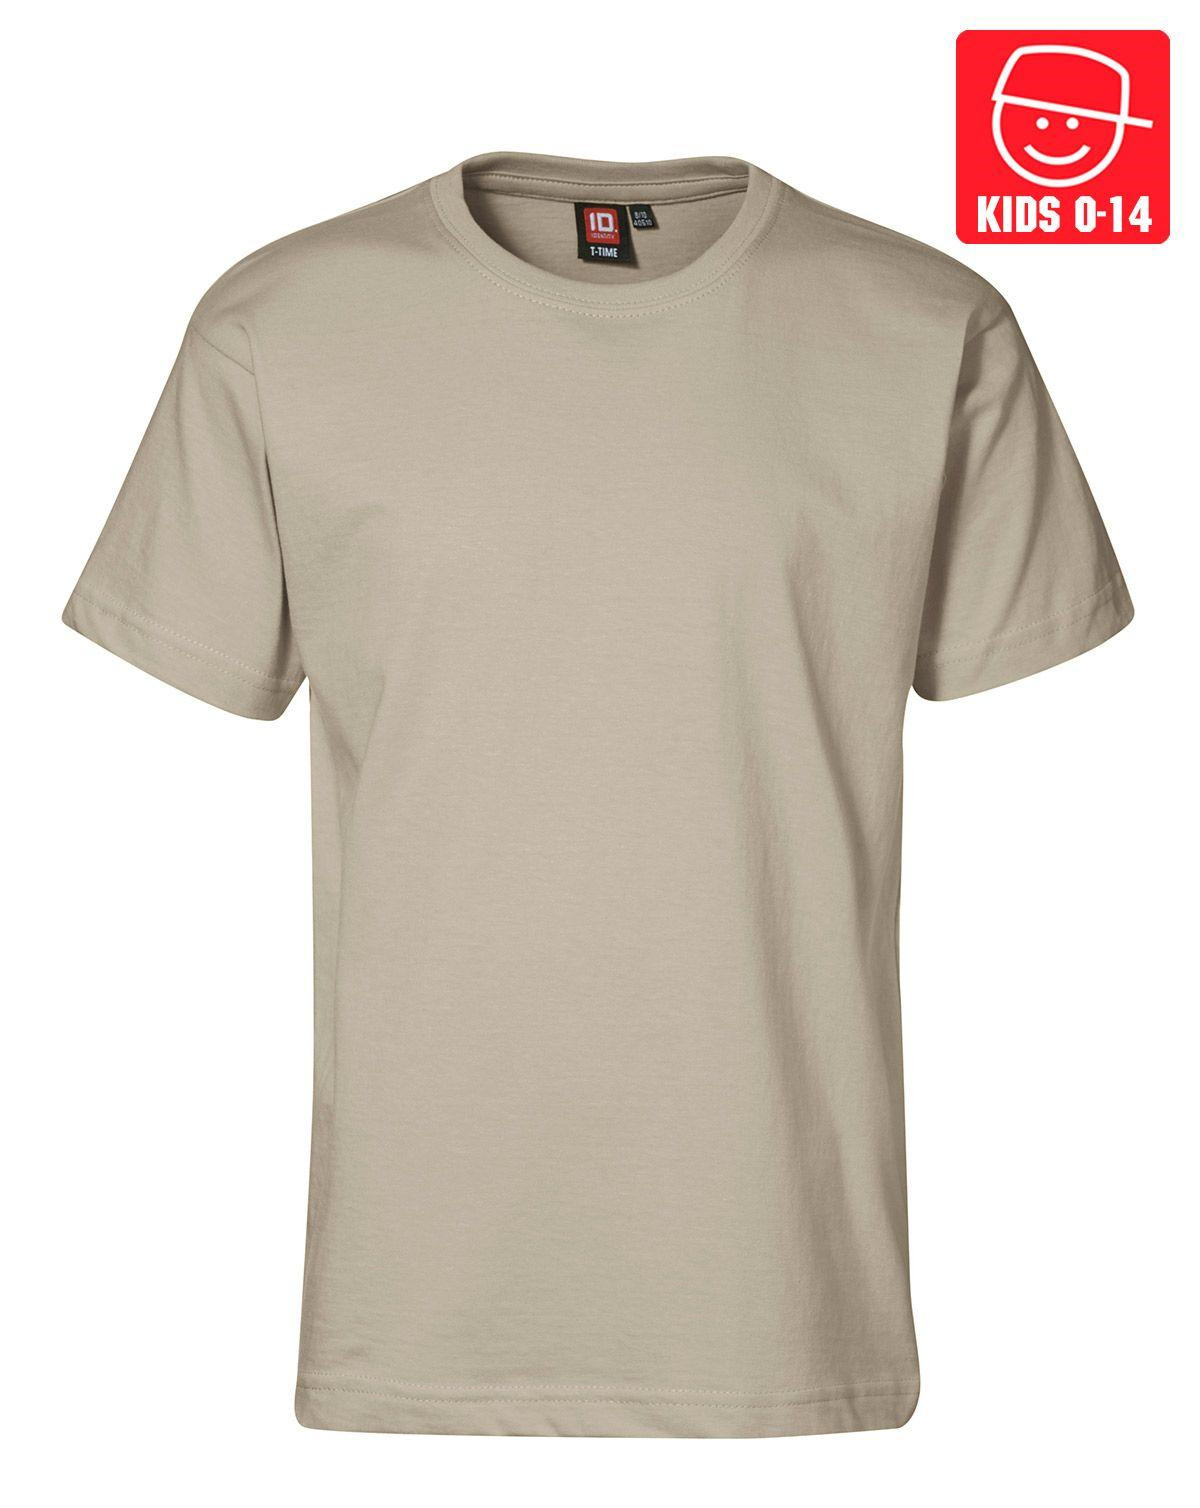 Image of   ID T-TIME T-shirt (Khaki, 158)